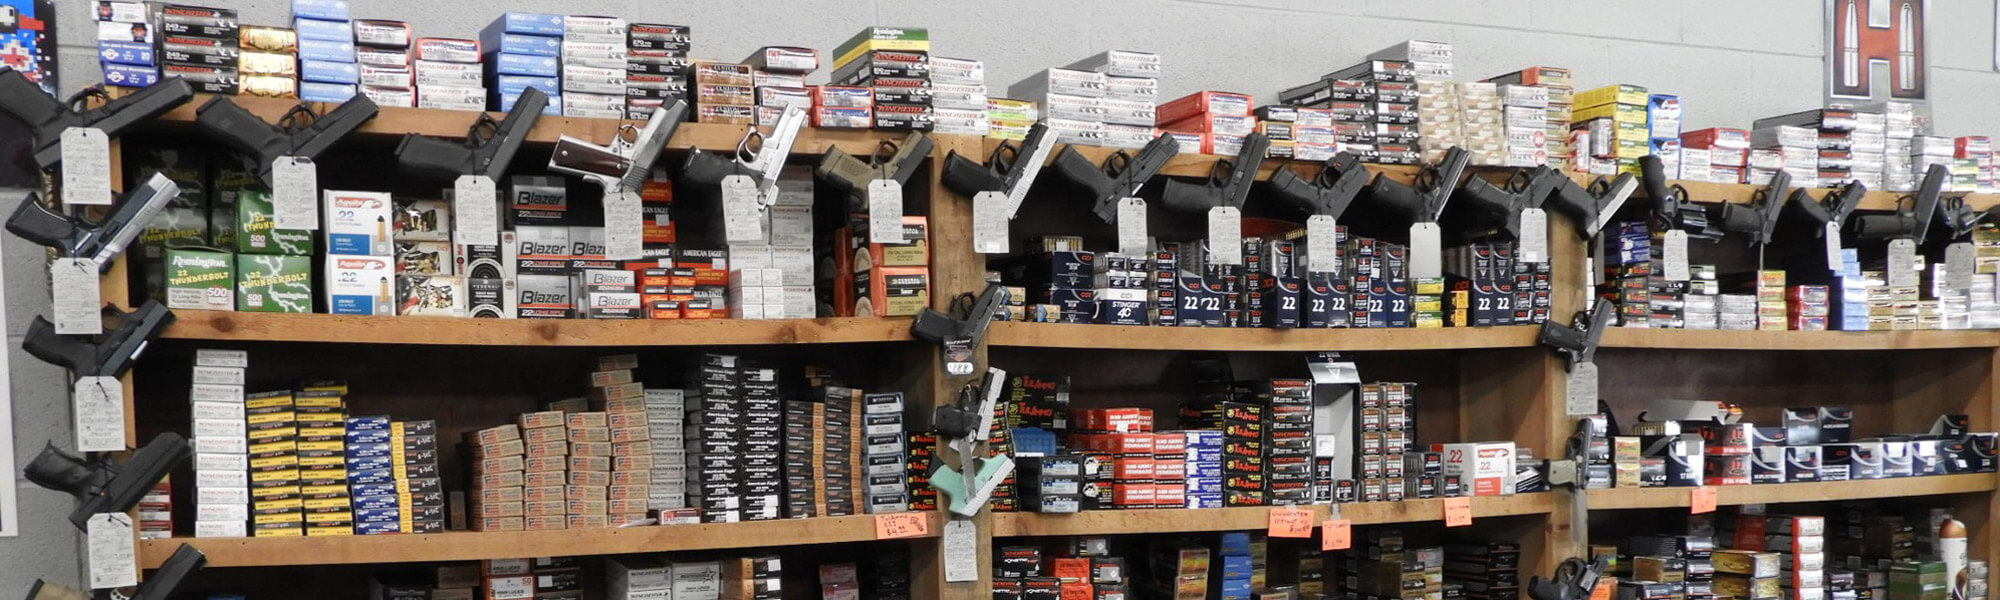 Ammo Collection and Pistols